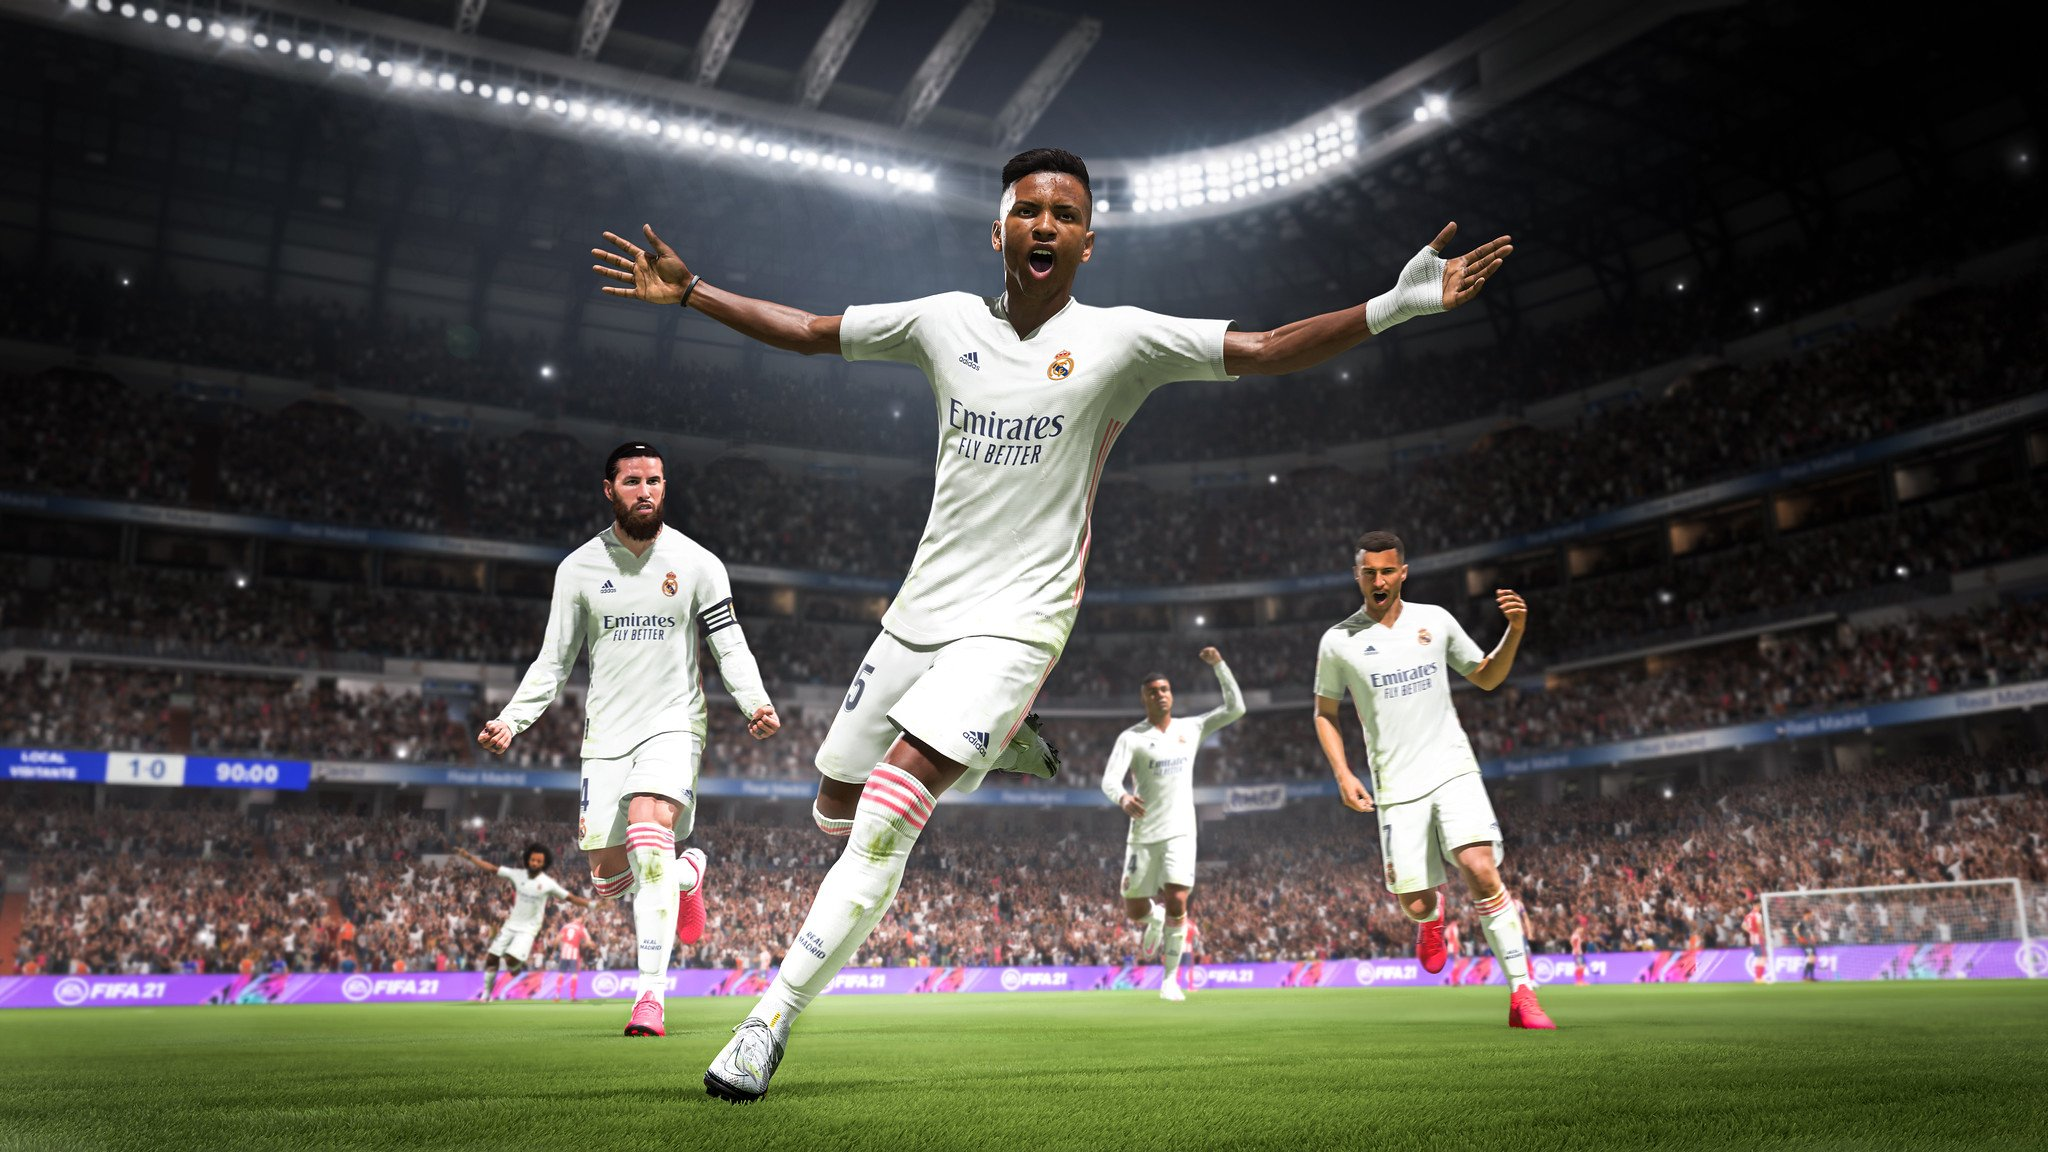 Best goalkeepers FIFA 21: The top 10 to sign in FUT